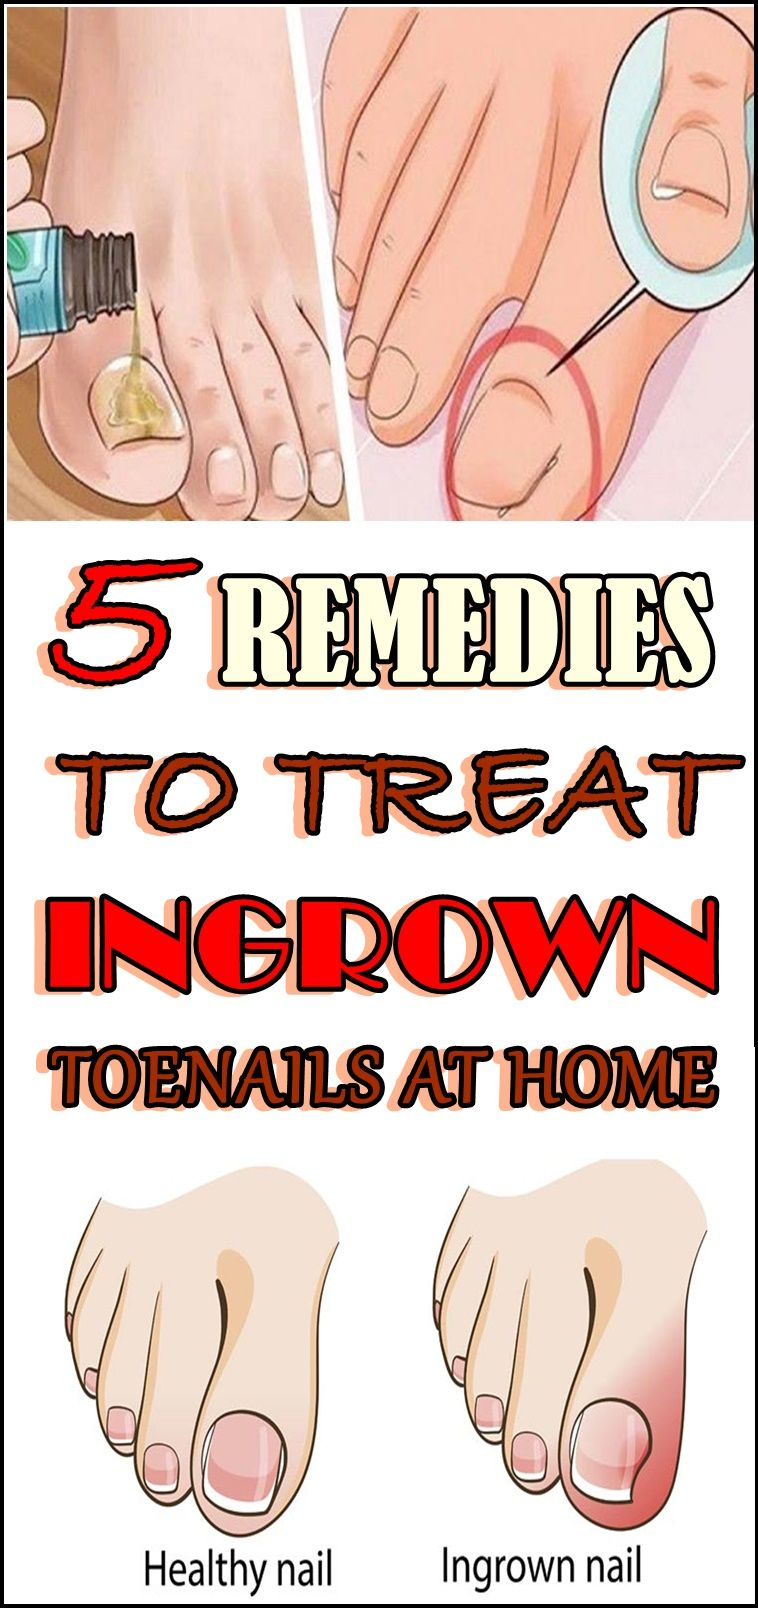 5 remedies to treat ingrown toenails at home with images